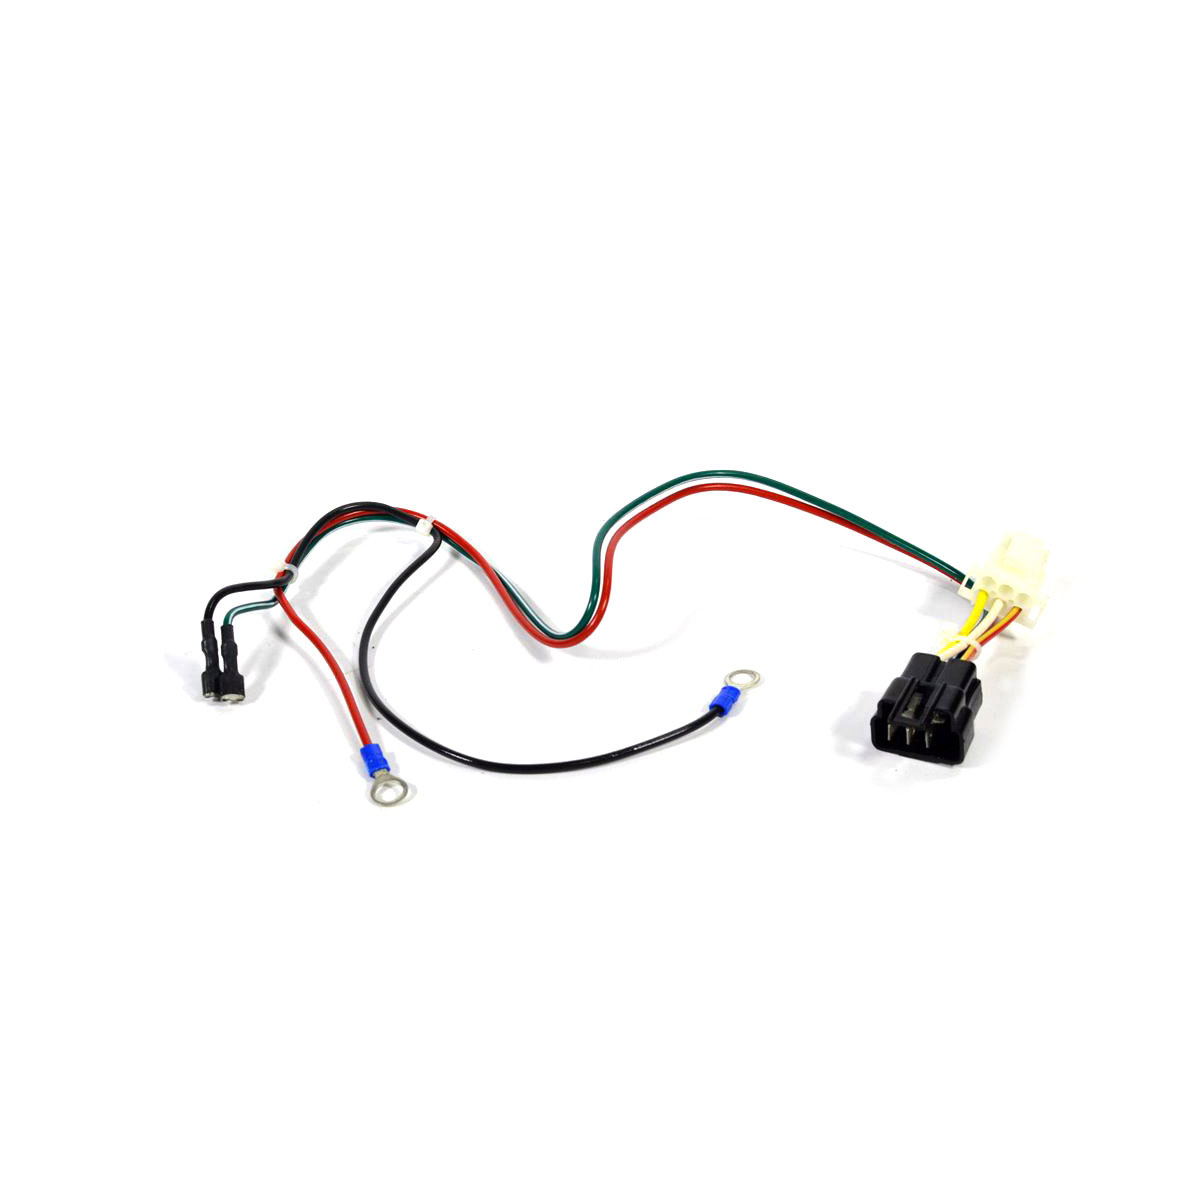 Scag Wire Harness Adapter Stc Bv 482836 Wiring